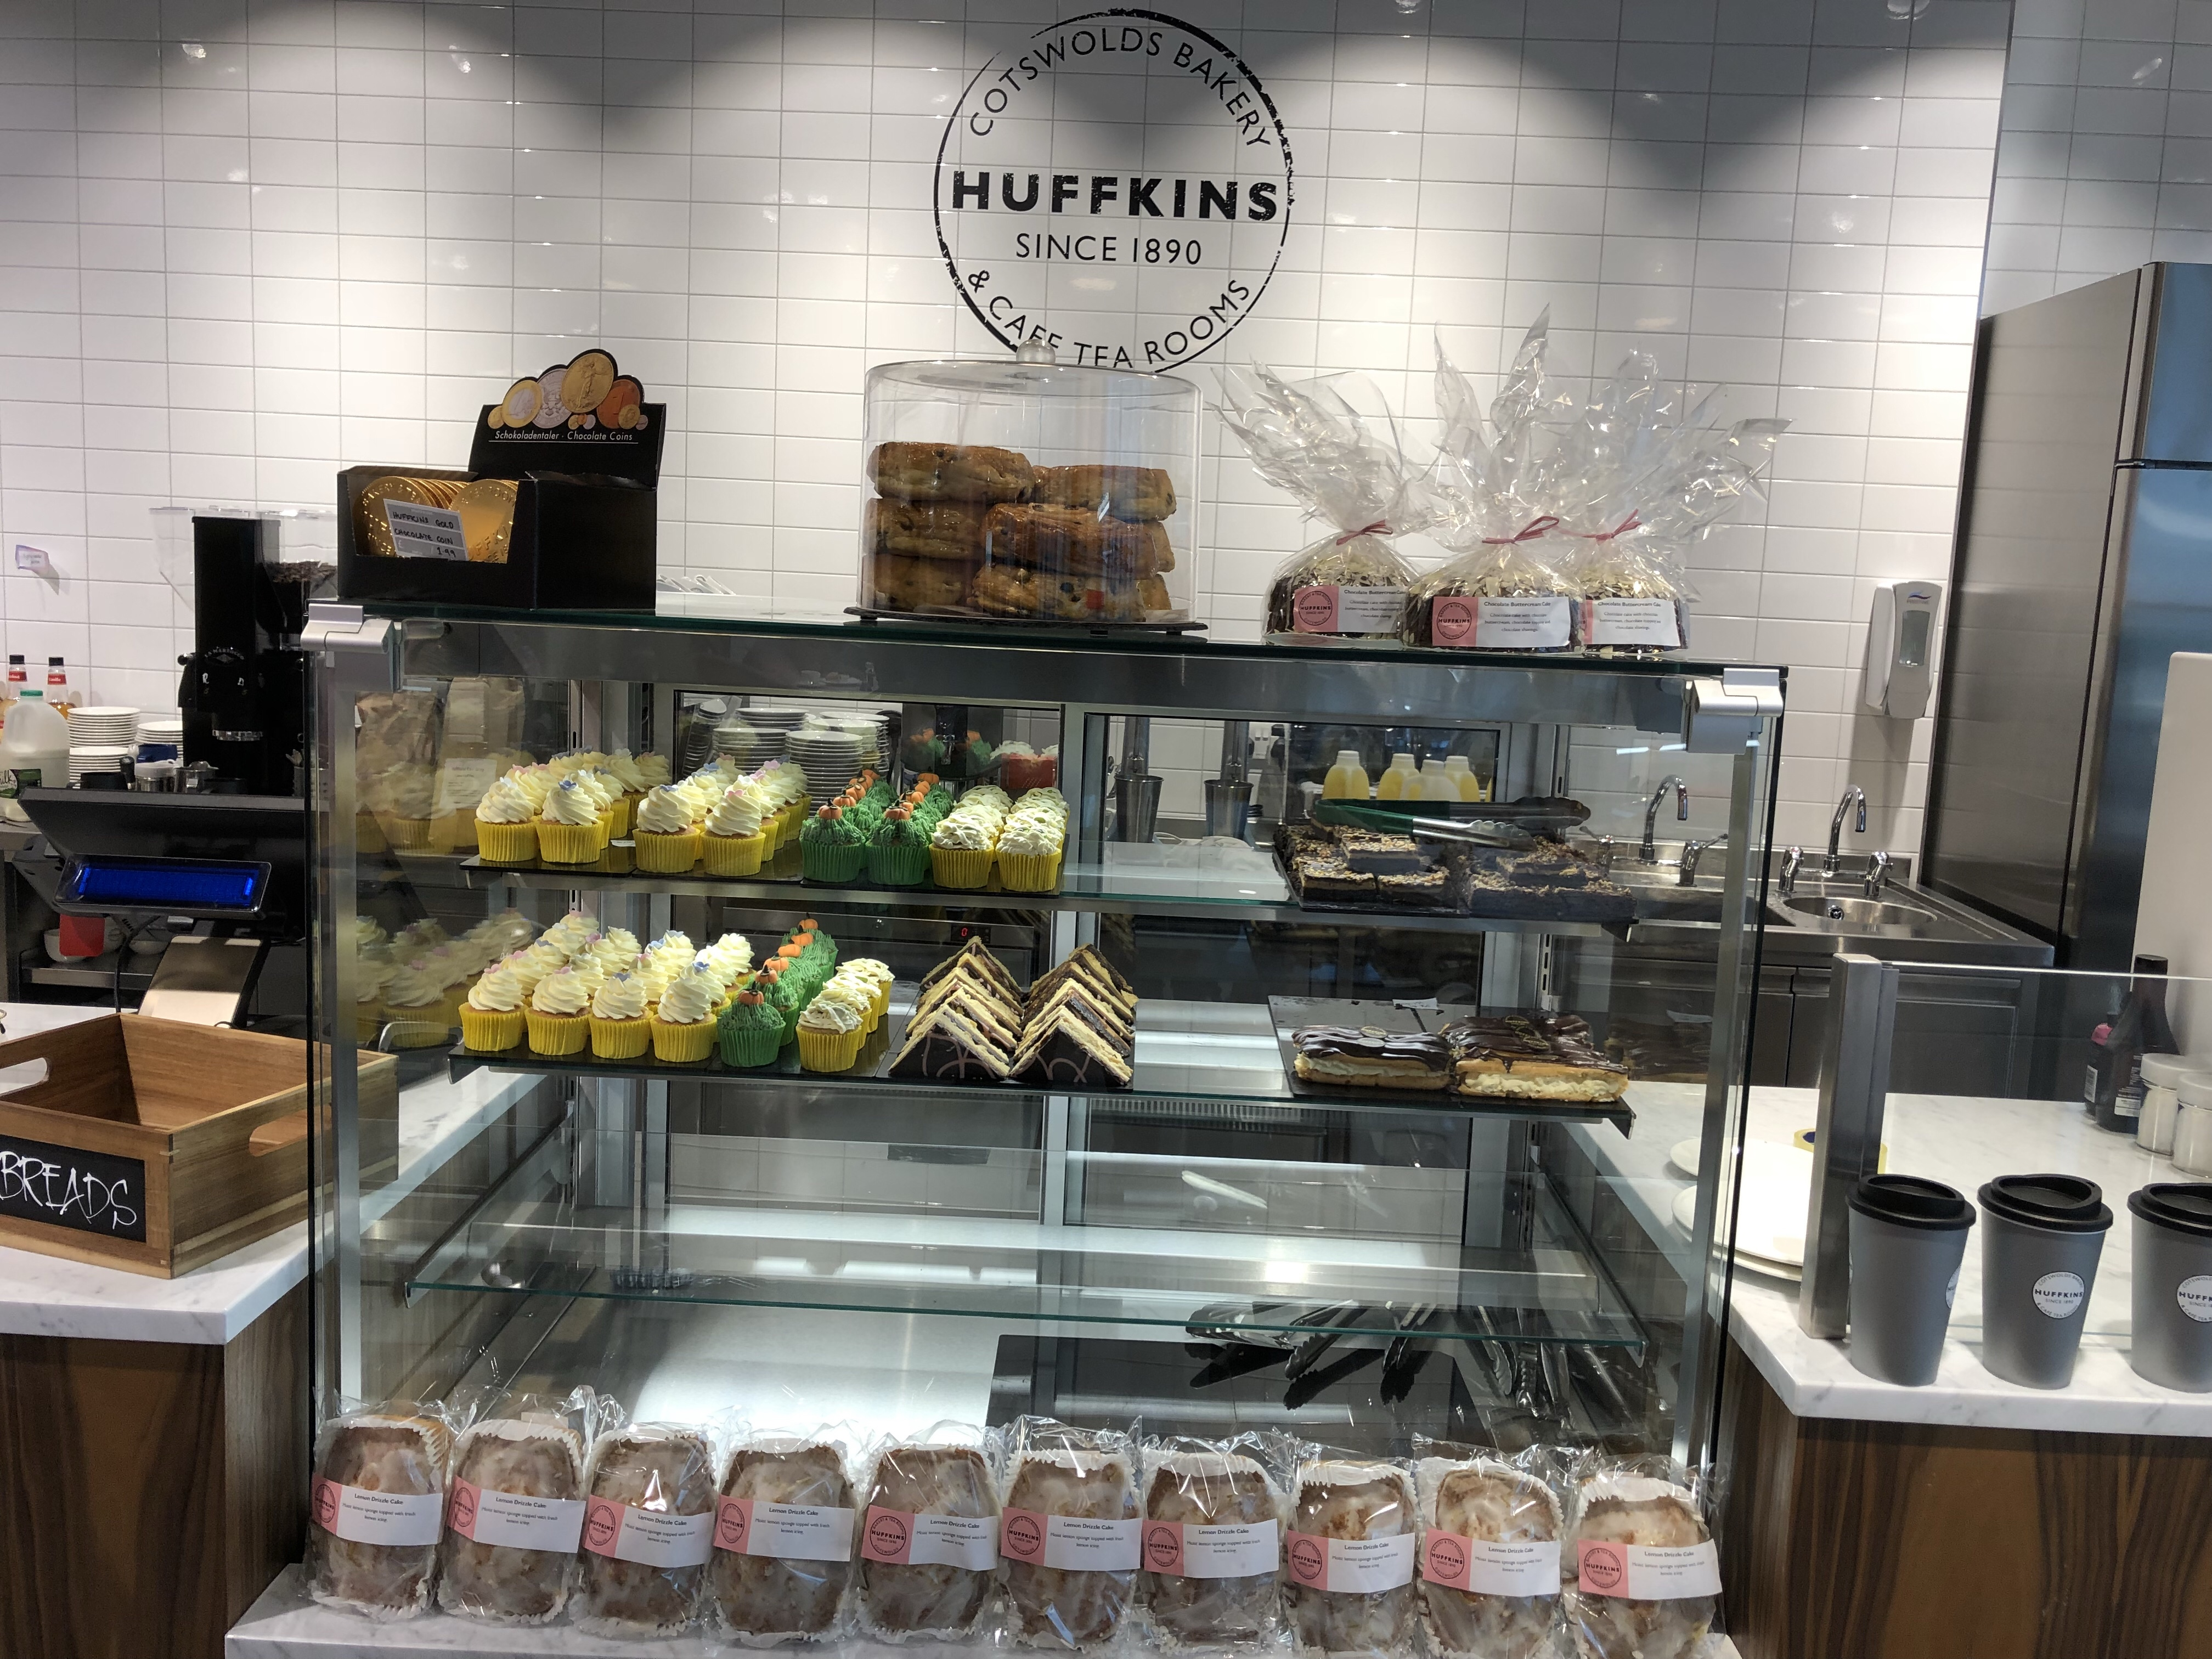 Lots of delicious looking cakes on the Huffkins bakery stand at John Lewis Cheltenham